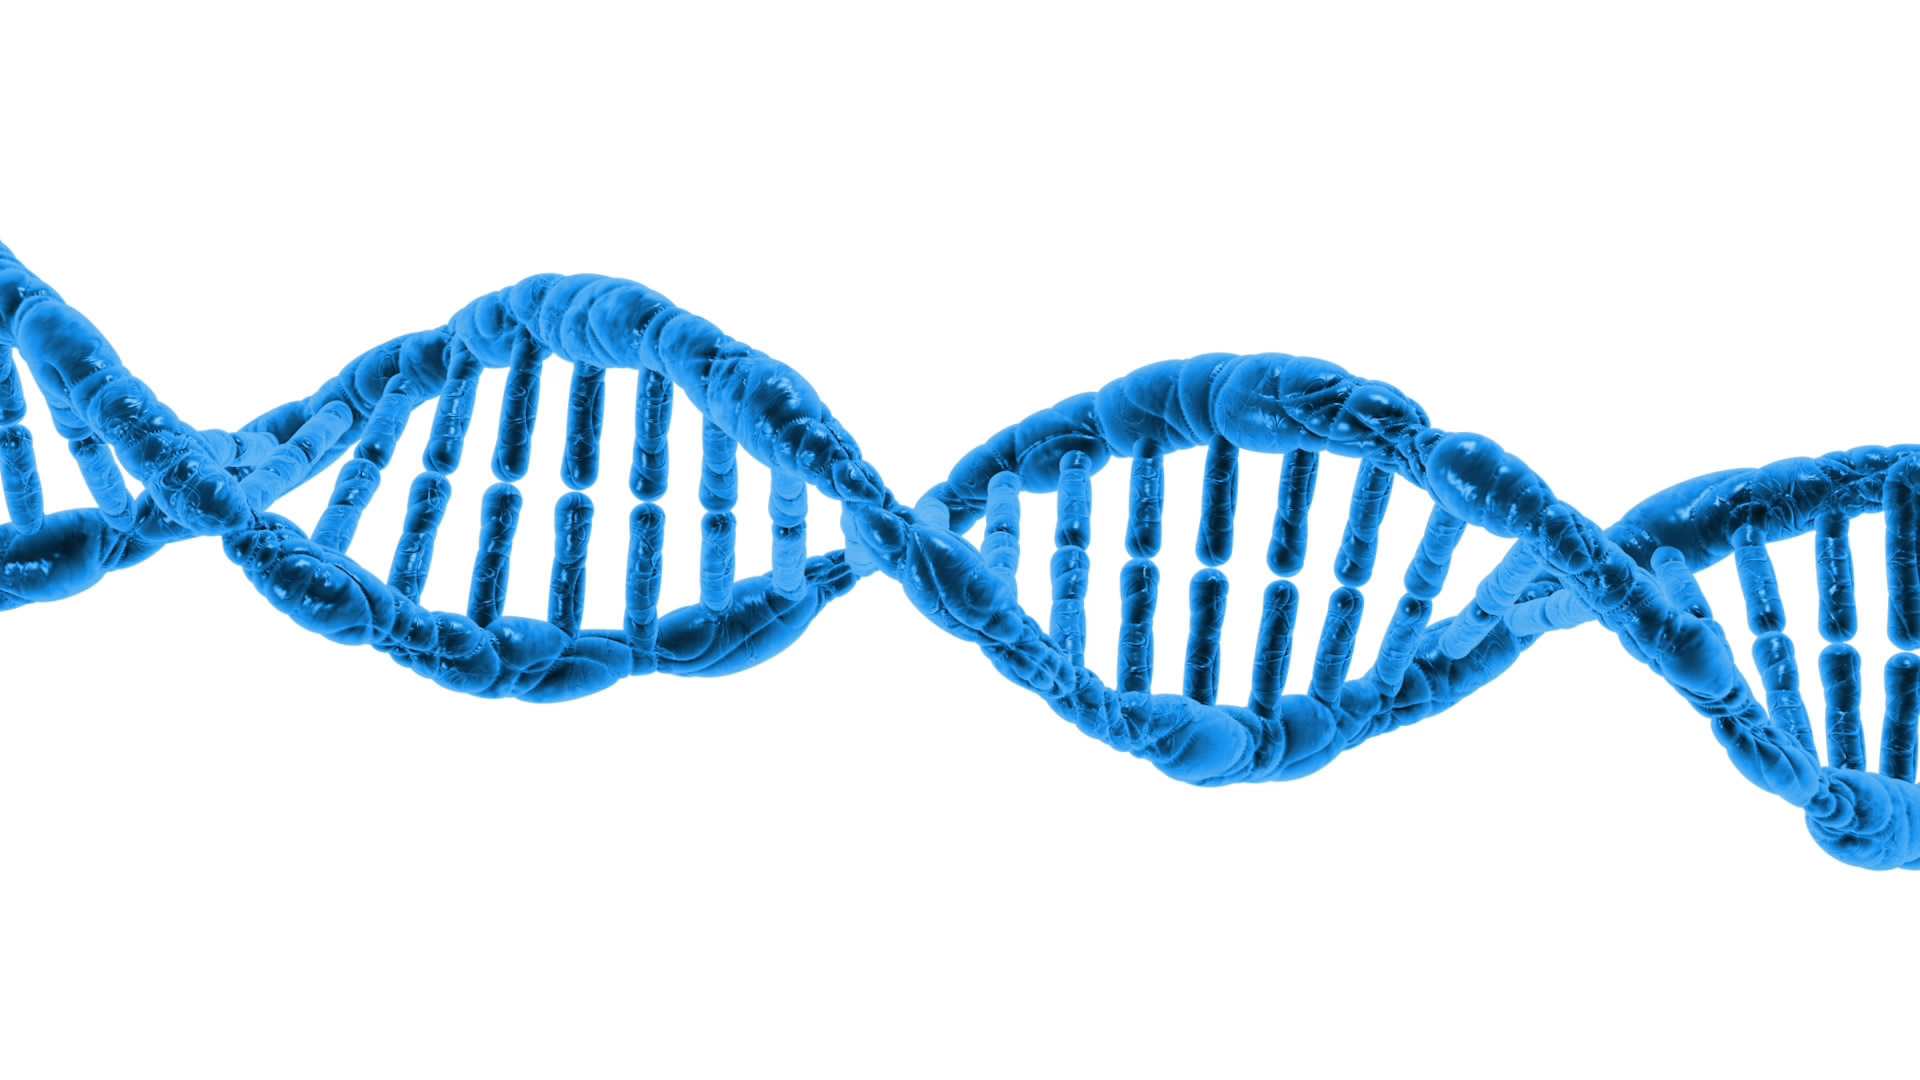 DNA-based evidence should be court-admissible throughout the world